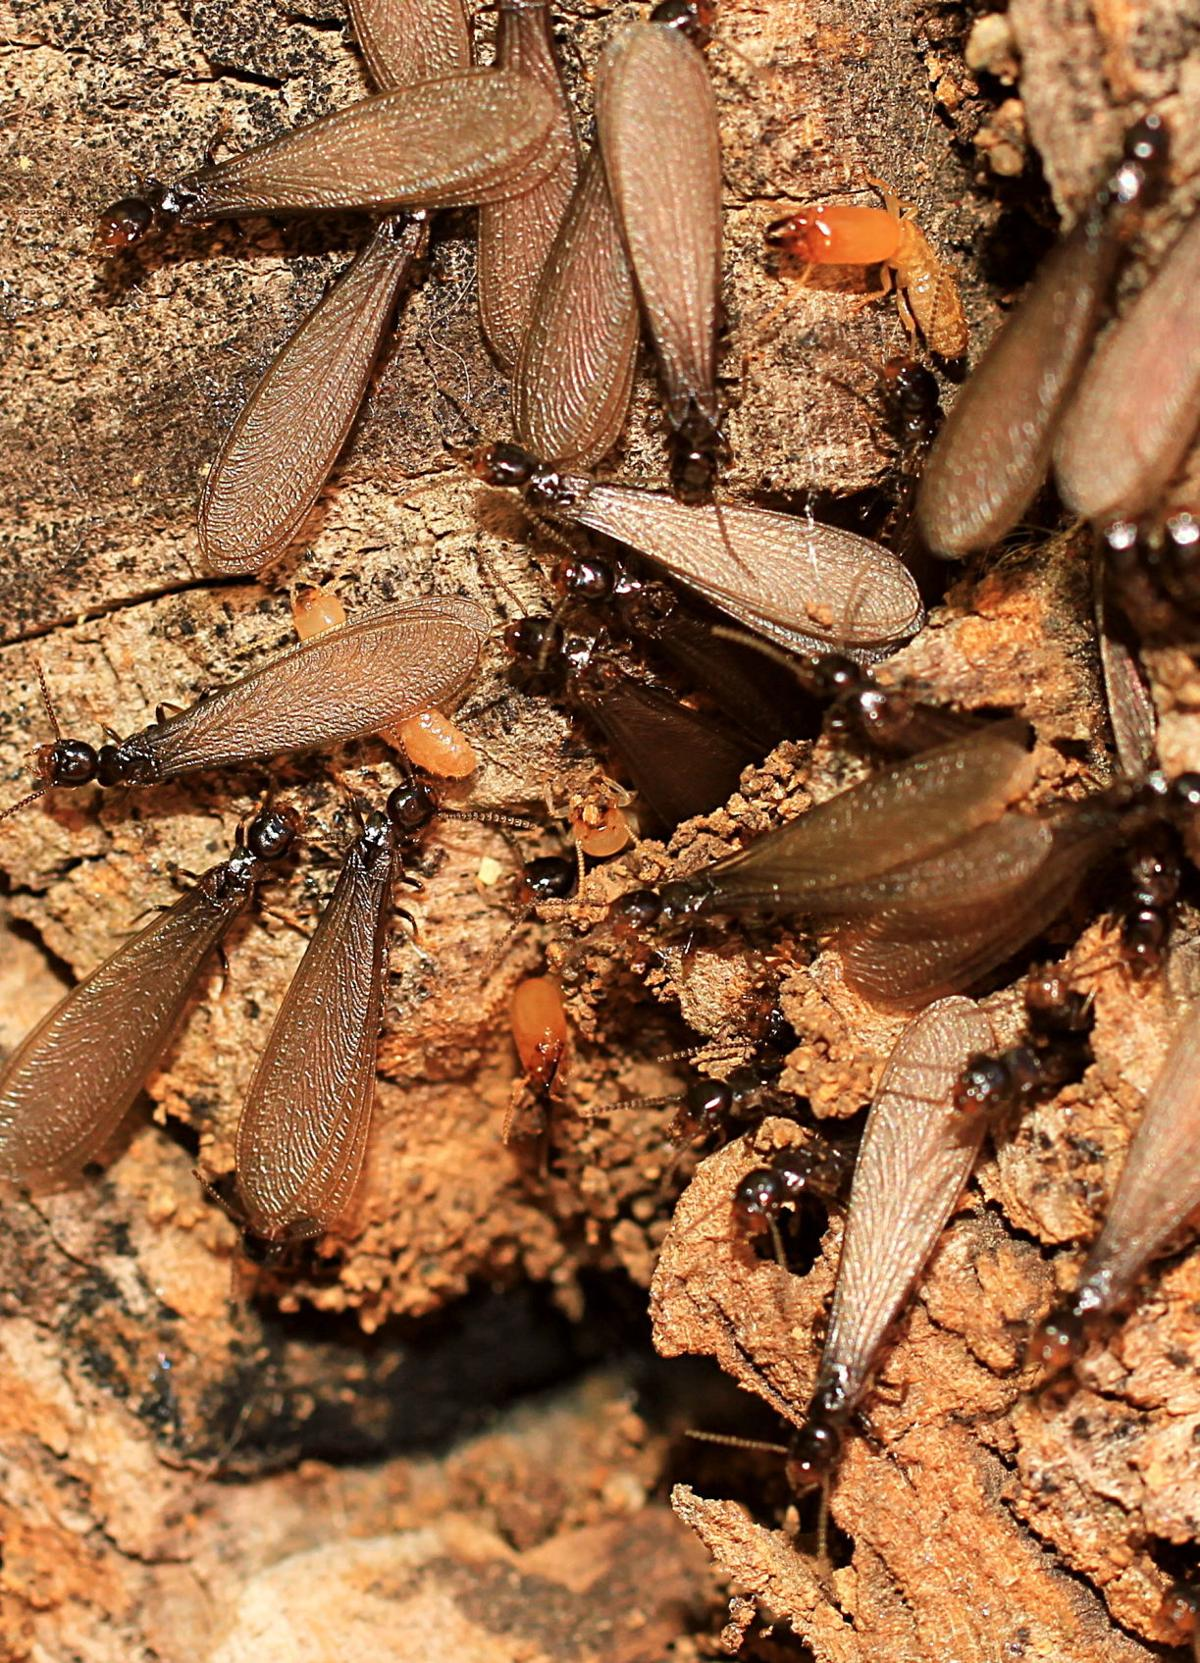 Old wooden beam affected by woodworm. Wood-eating larvae species beetle